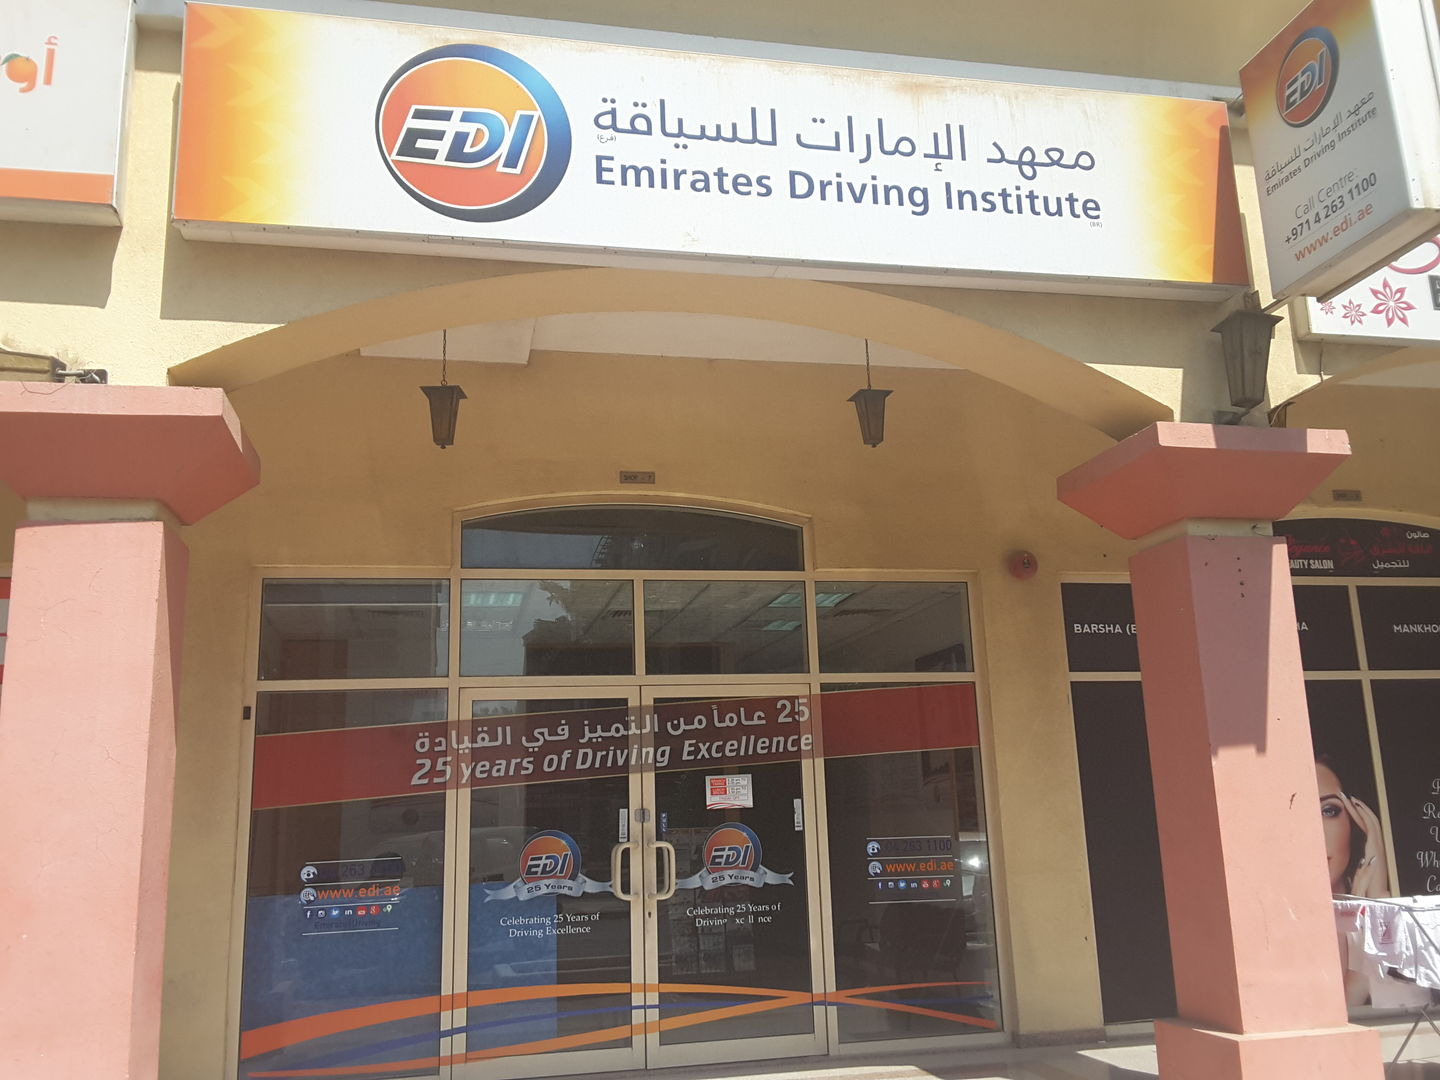 HiDubai-business-emirates-driving-institute-education-driving-schools-al-raffa-al-raffa-dubai-2